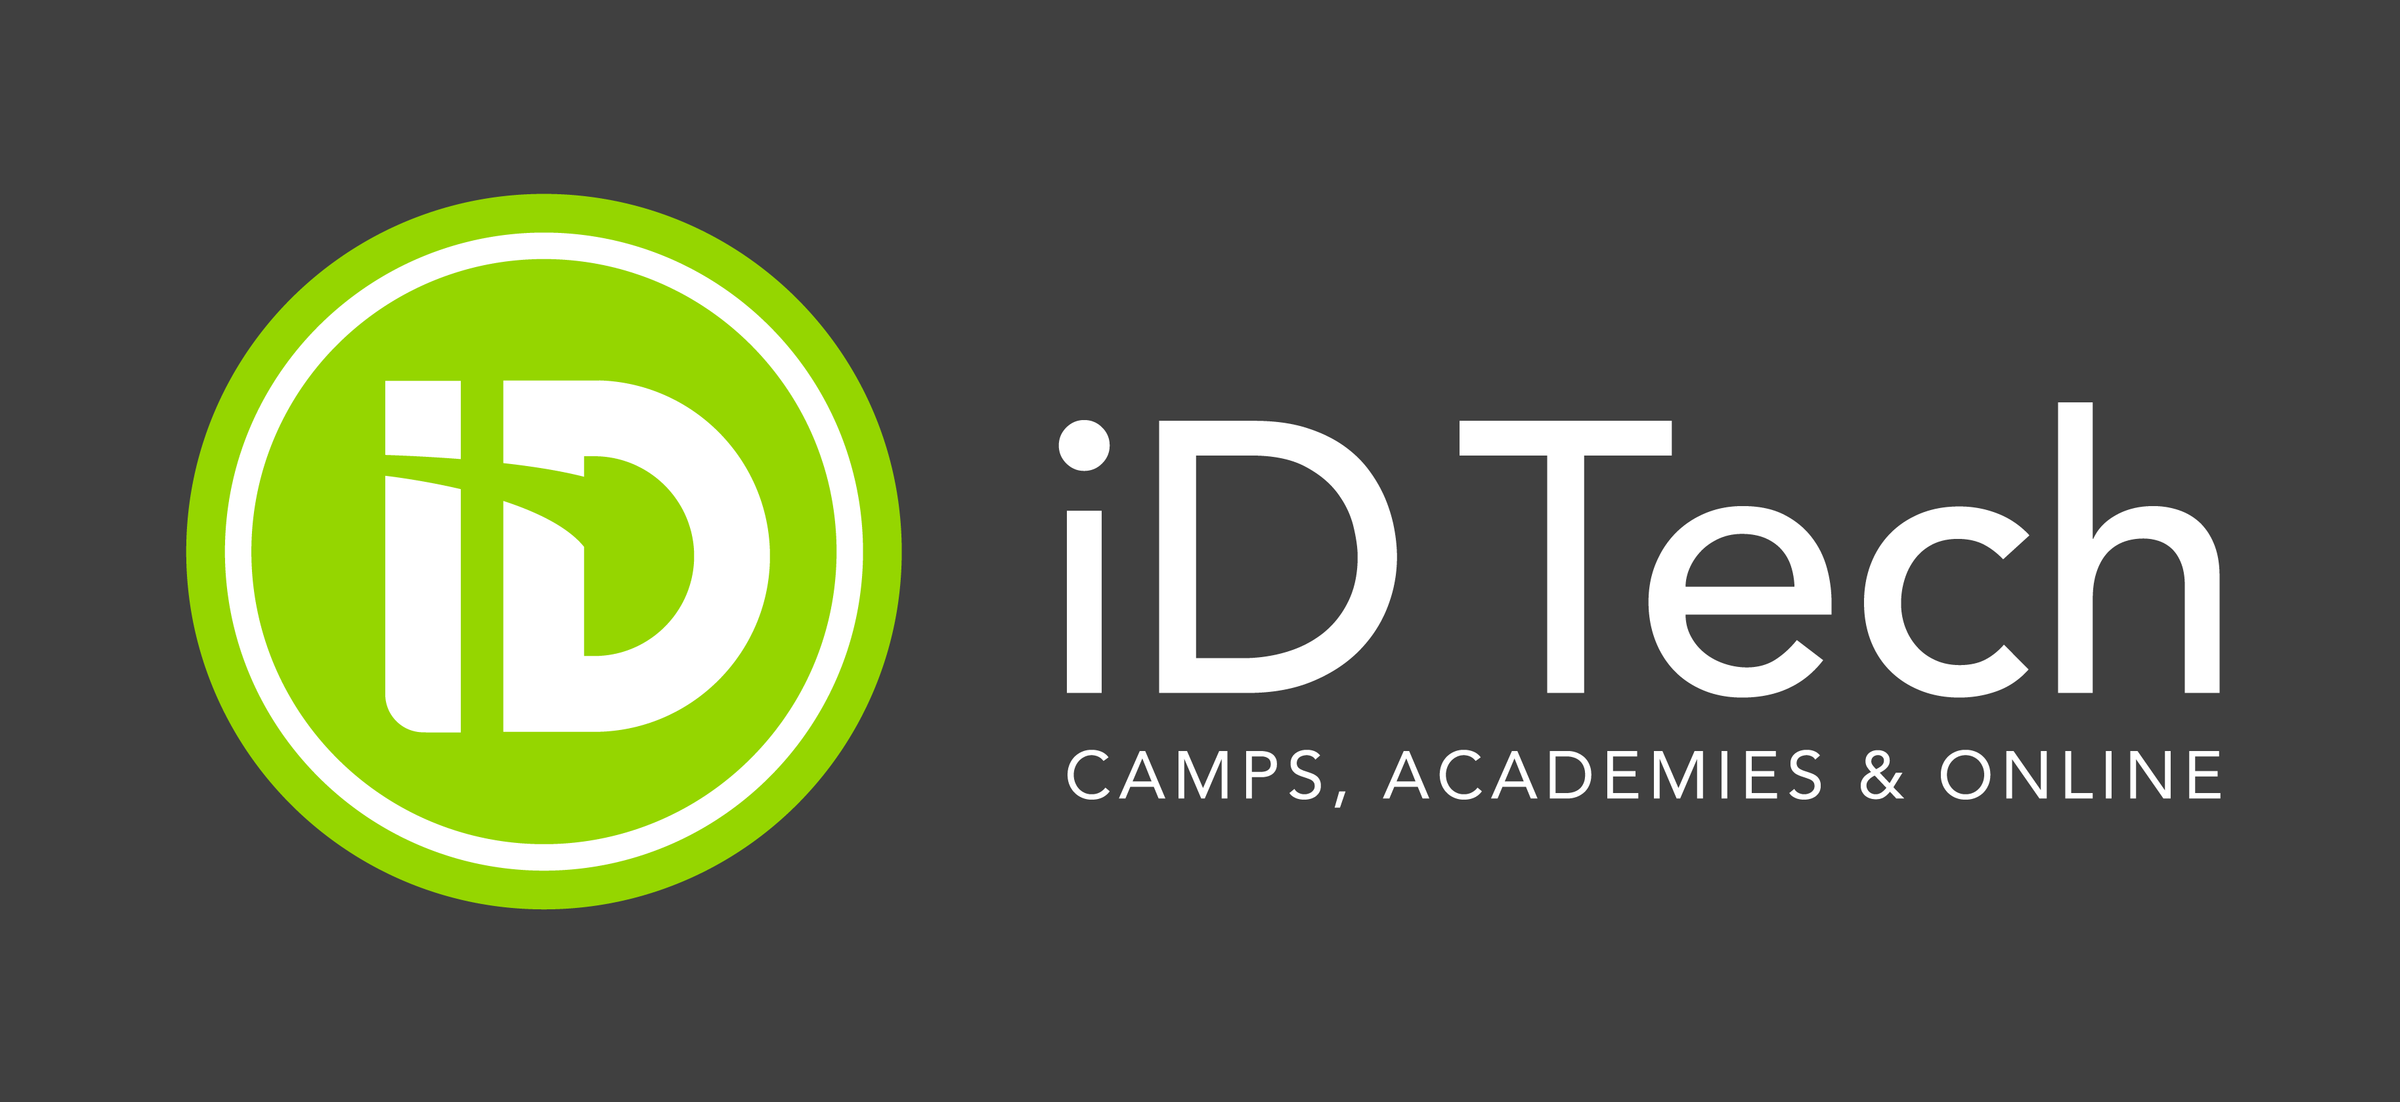 iD Tech Camps: #1 in STEM Education - Held at Yonsei University